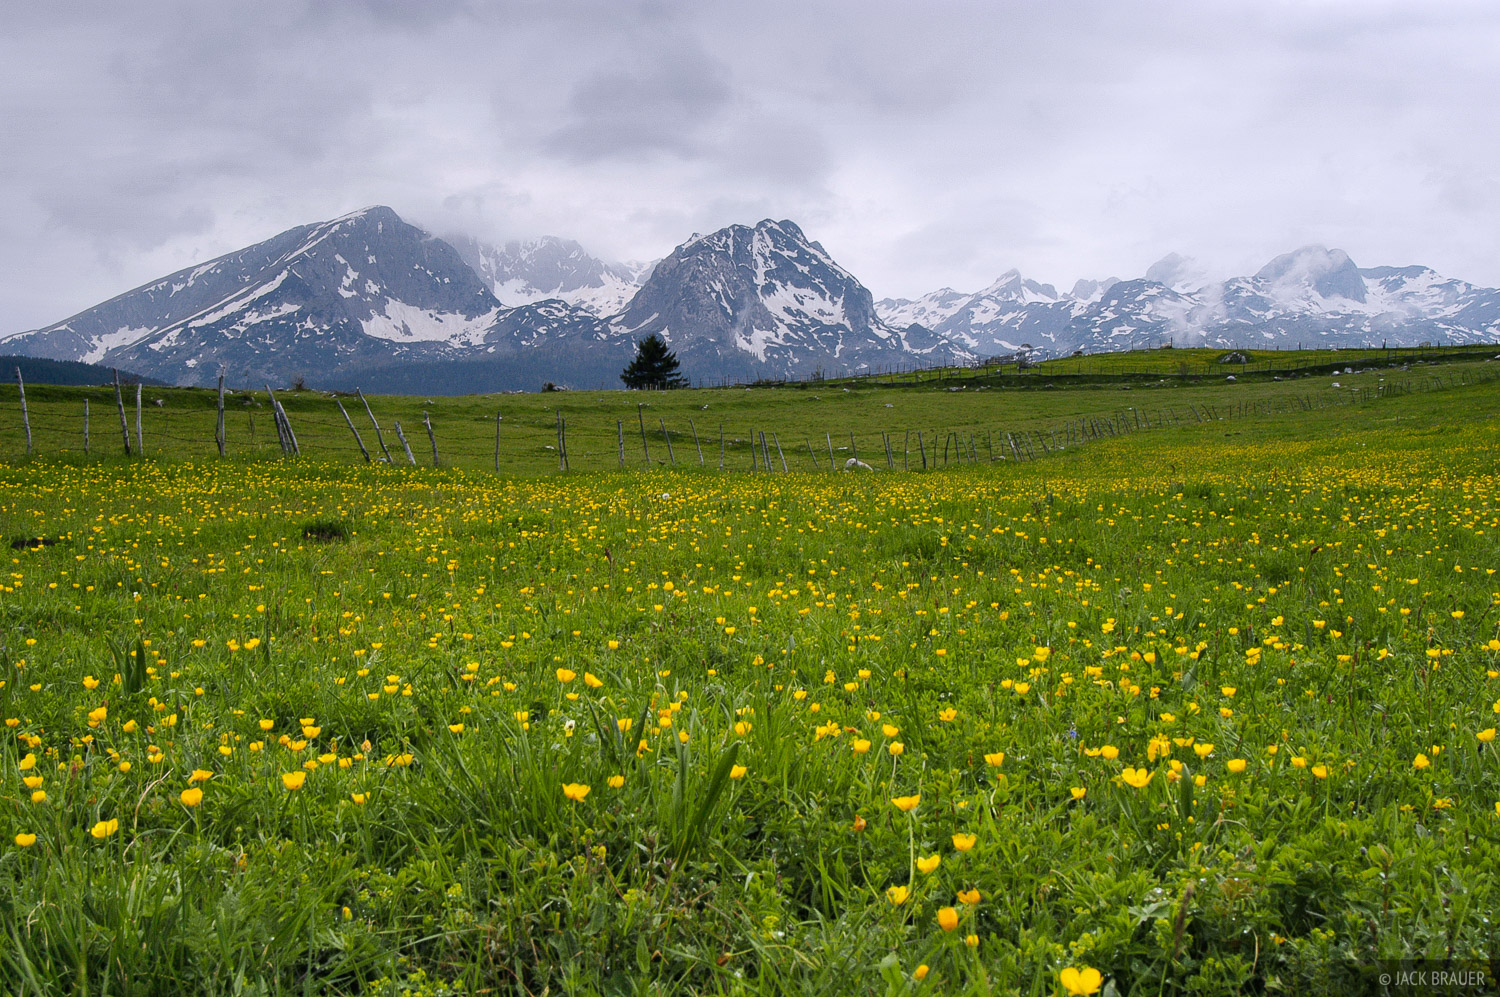 Wildflowers below Savin  Kuk (2313 m) and Medjed (2287 m) - June